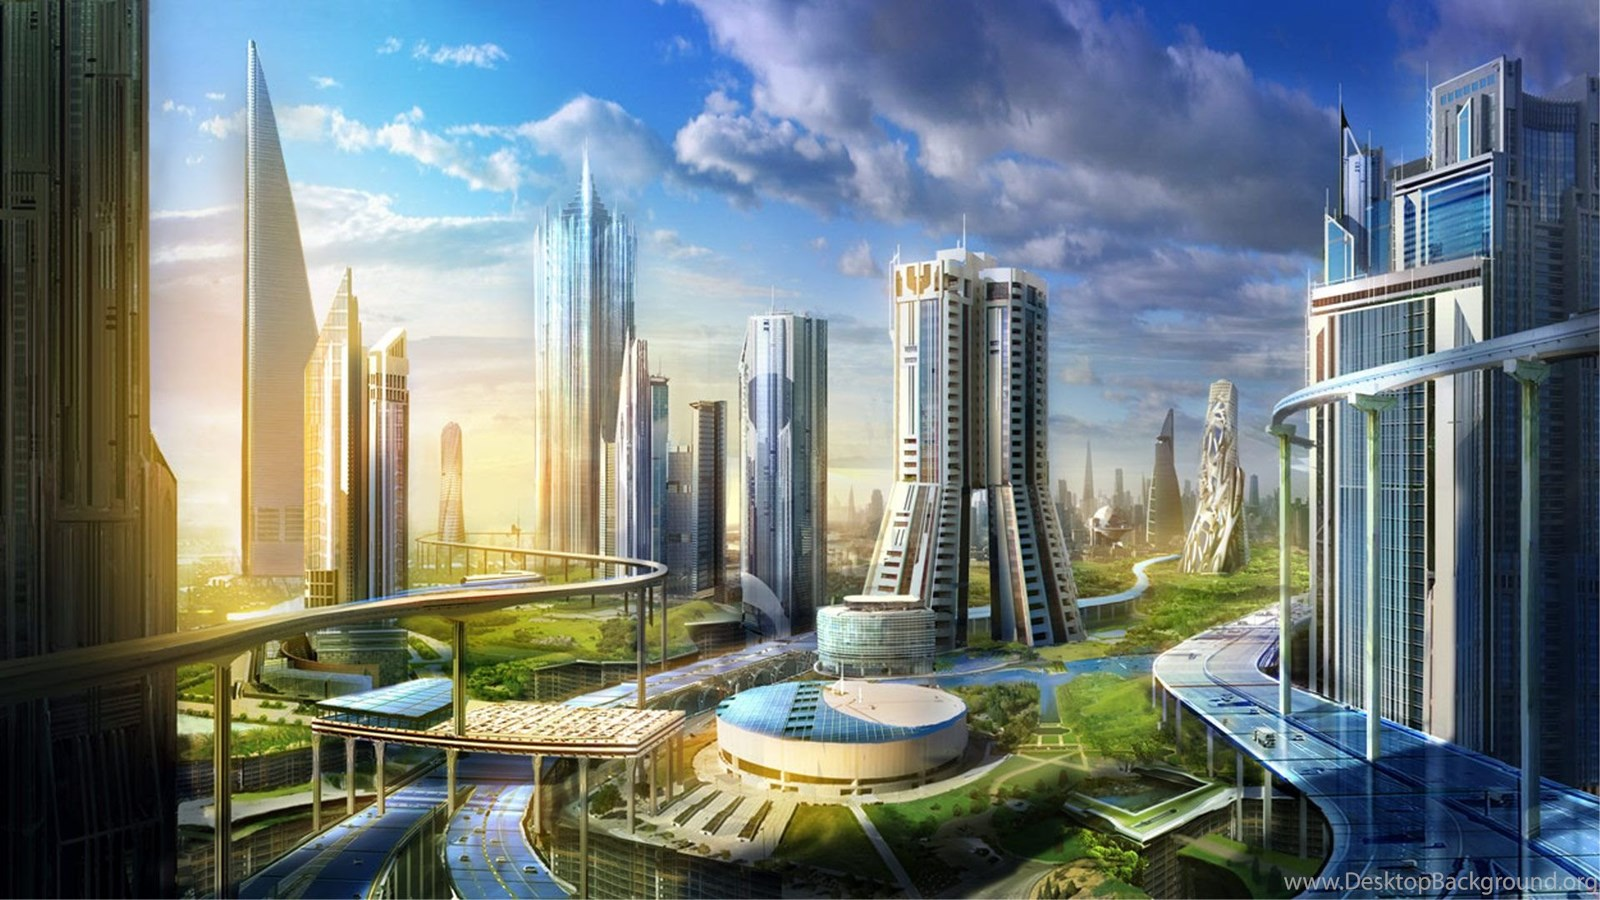 Future City Hd Wallpapers Hd Wallpaper Backgrounds Of Your Choice Desktop Background